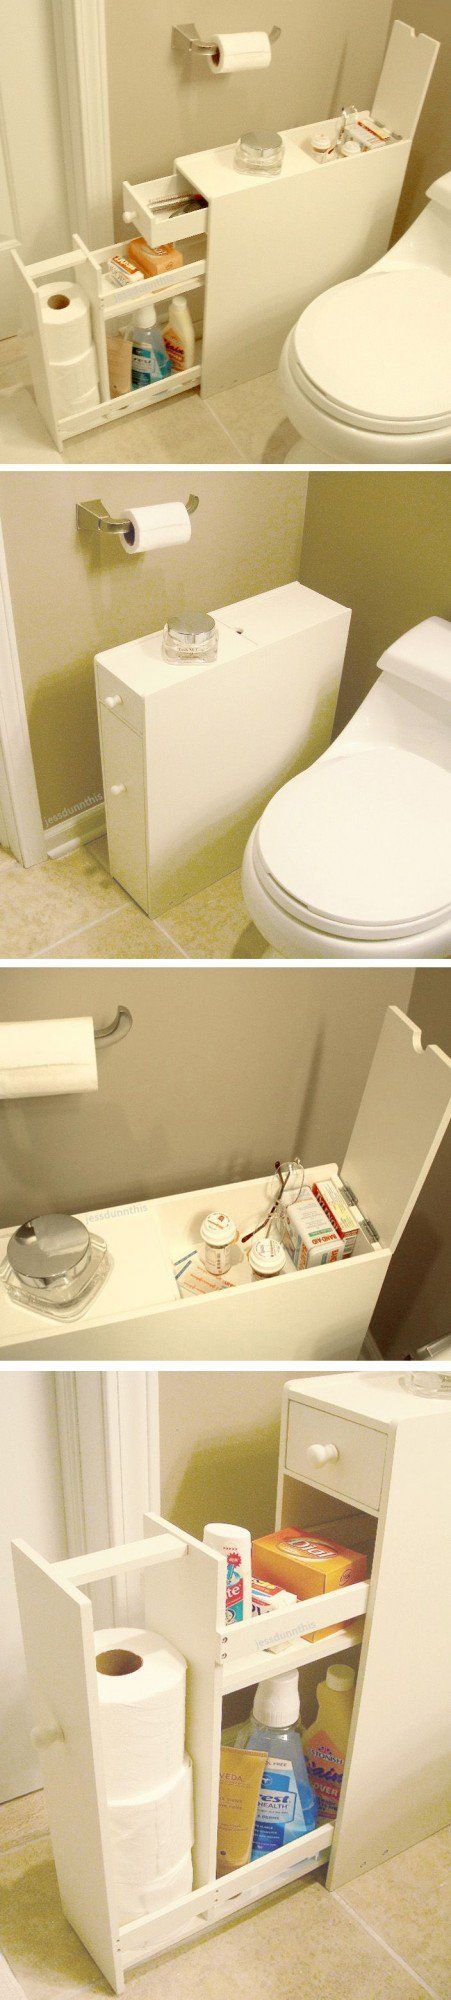 Small bathroom storage ideas - 25 Fascinuj Cich Urob Si S M N Padov Na Organiz Ciu Predmetov V K Pe Ni Room Saverspace Saversmall Bathroom Storagestorage Spacesstorage Ideasdiy